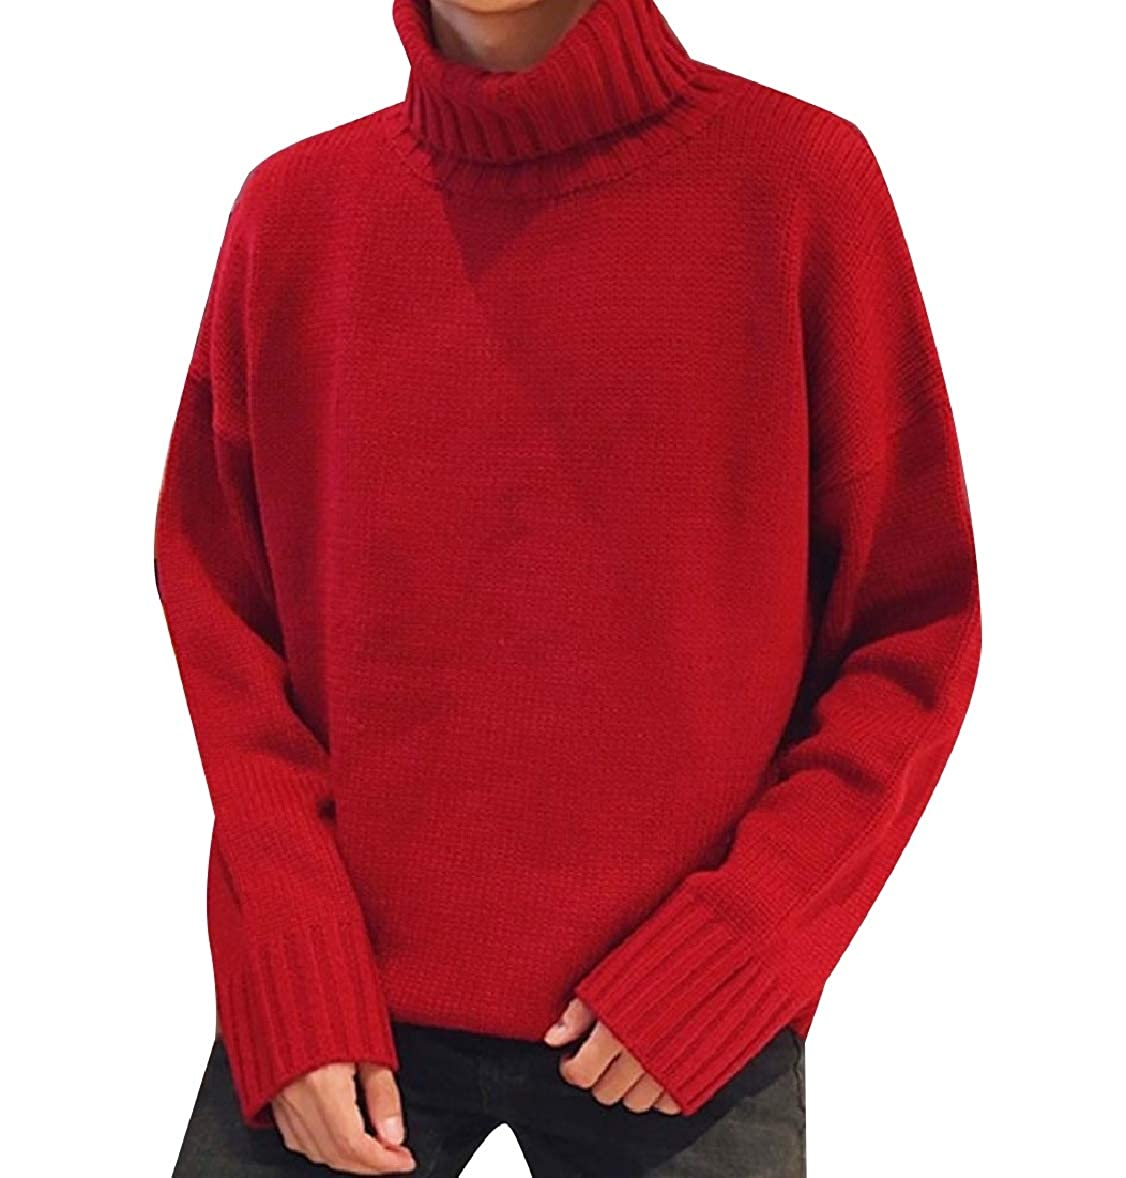 Zimaes-Men Sweater Pure Color Turtleneck Fashion Warm Pullover Knitwear